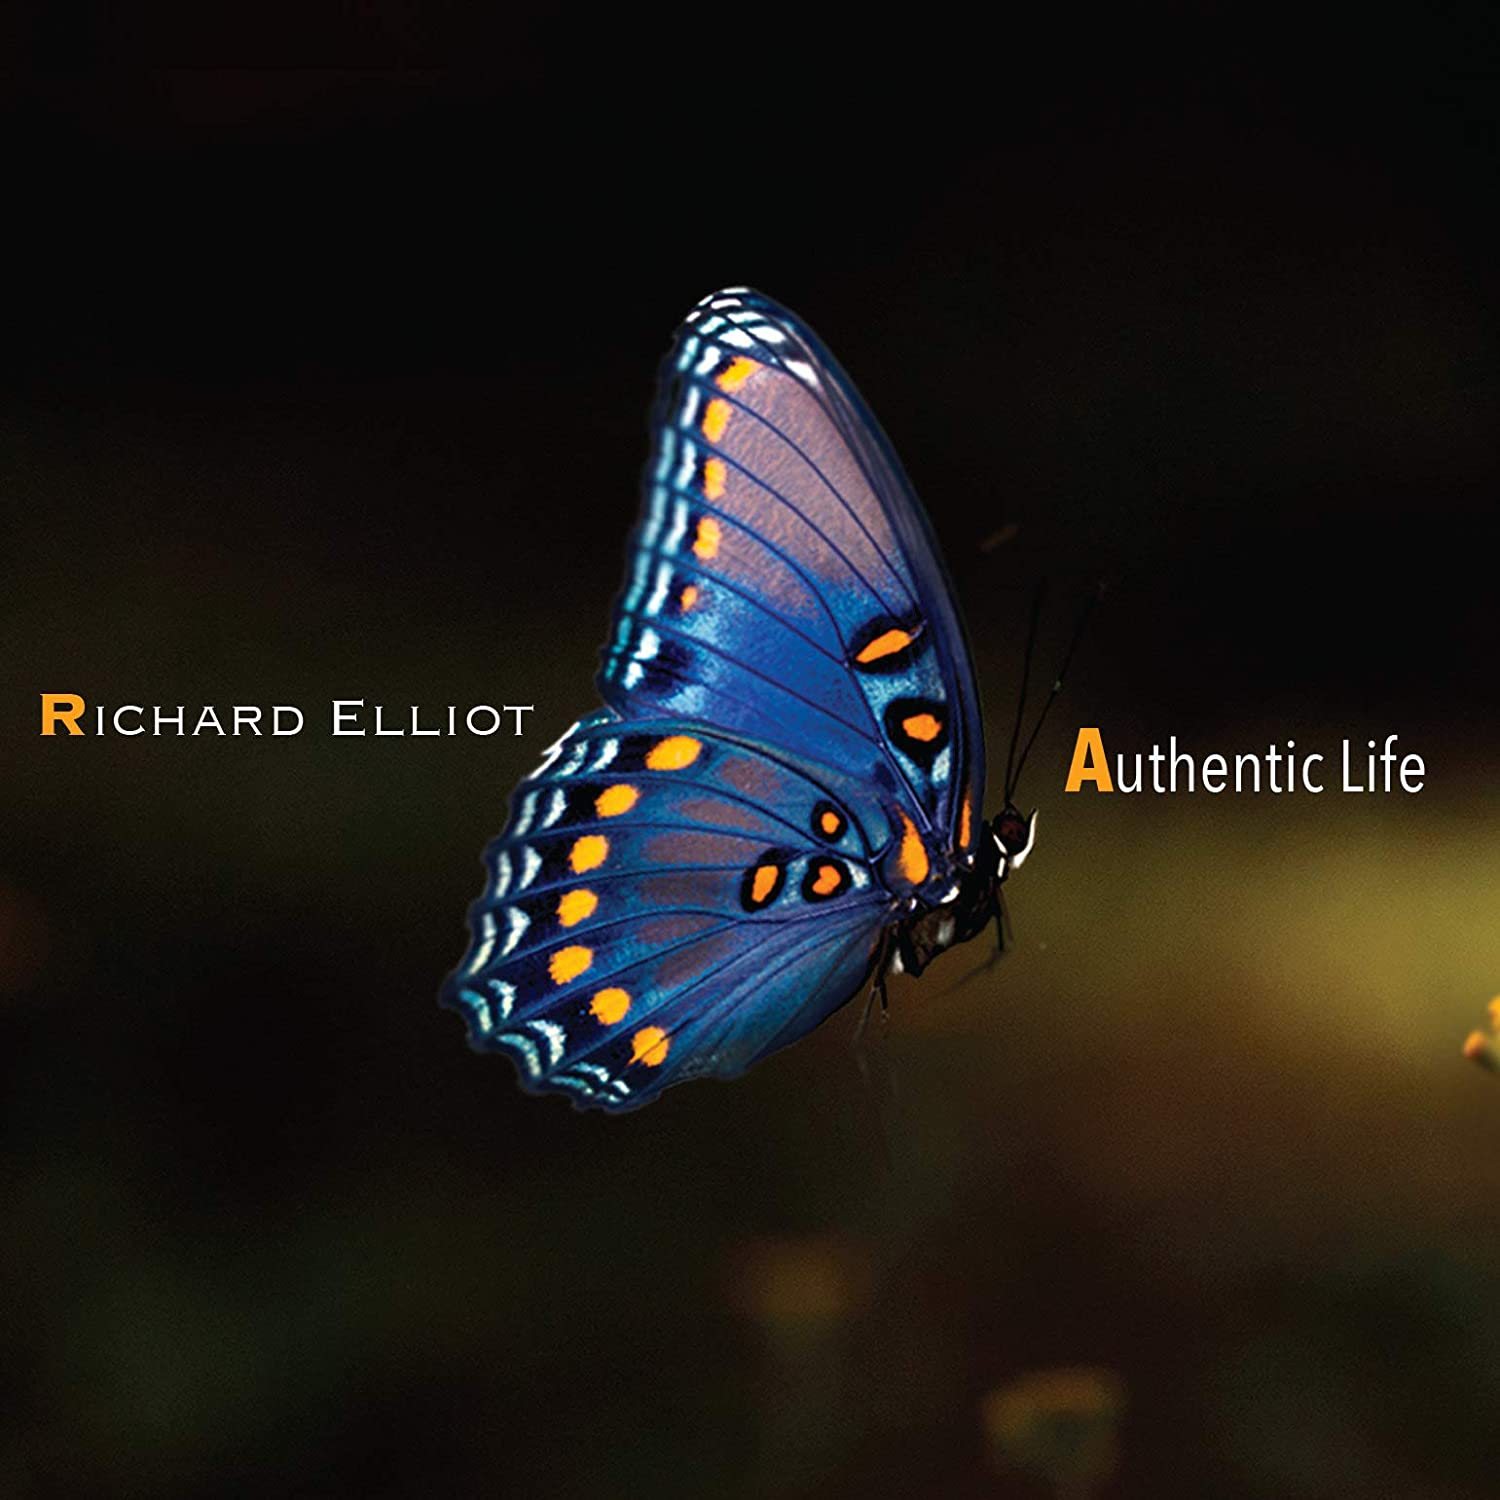 RICHARD ELLIOT - Authentic Life cover